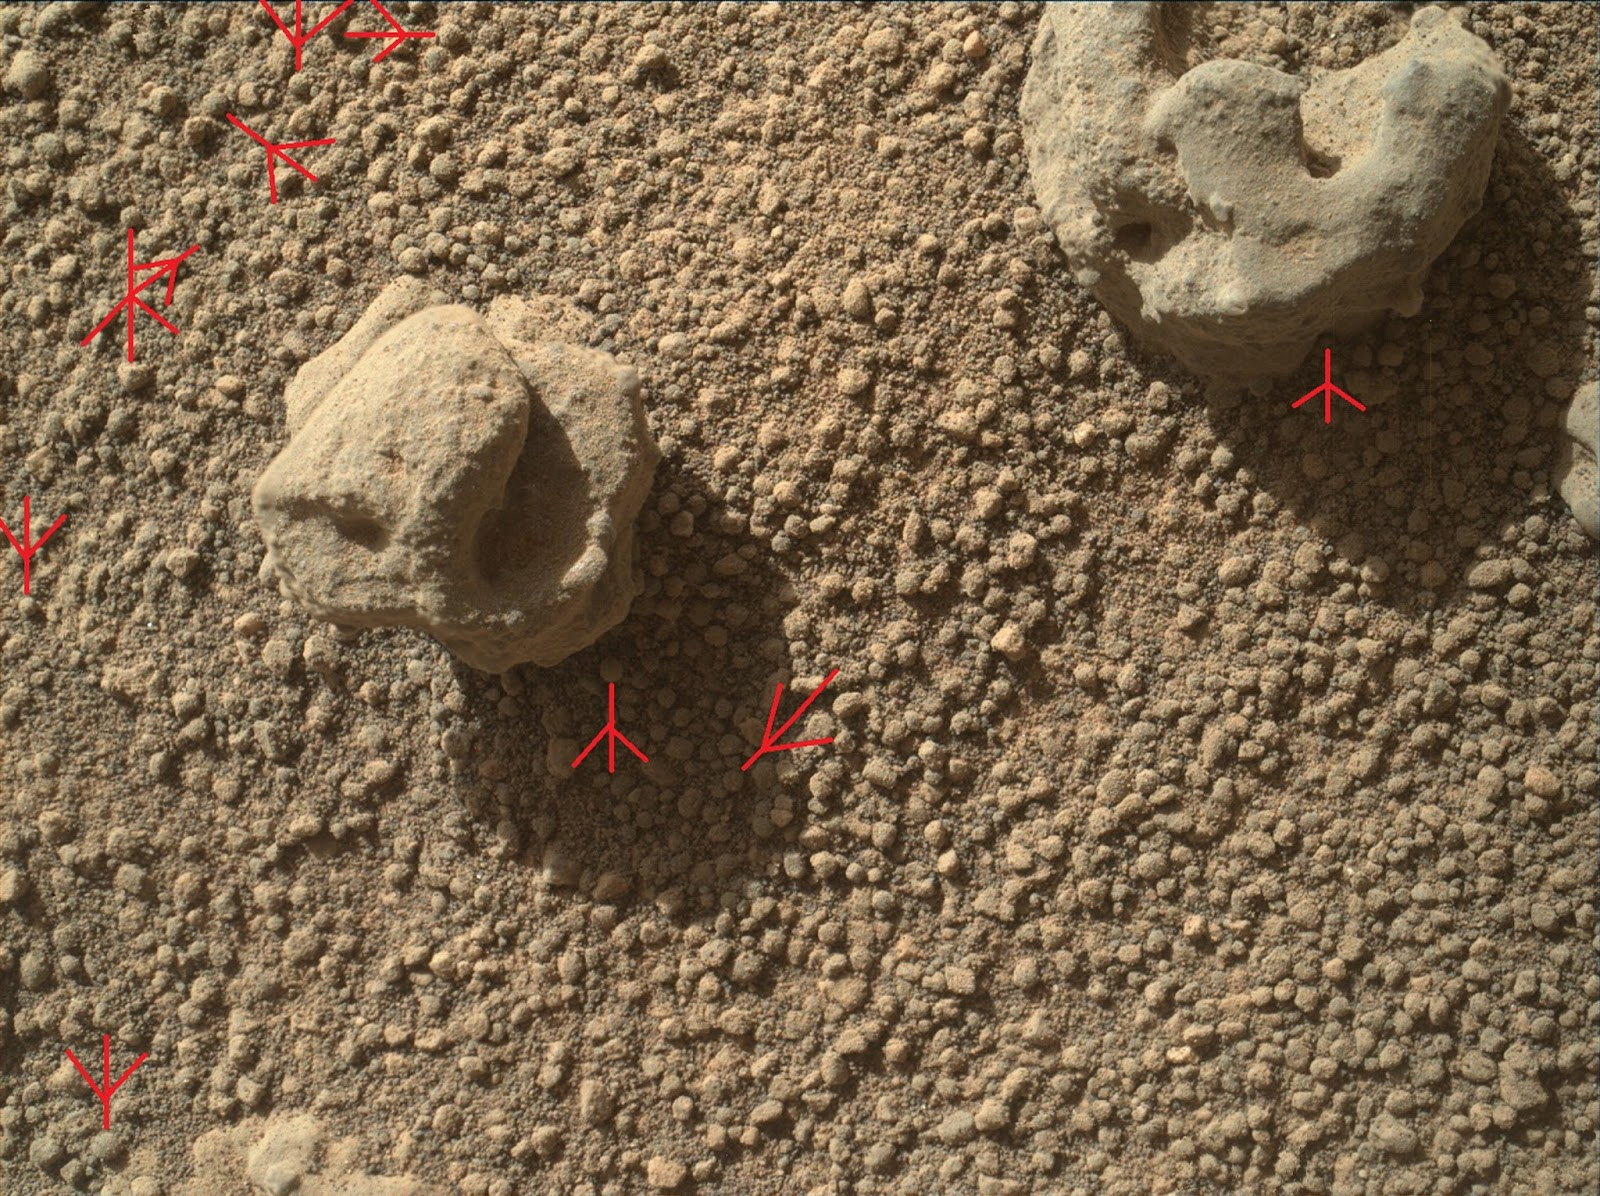 Sand Spheres Are Usually Ooids Made by Microbes. | Wretch Fossil